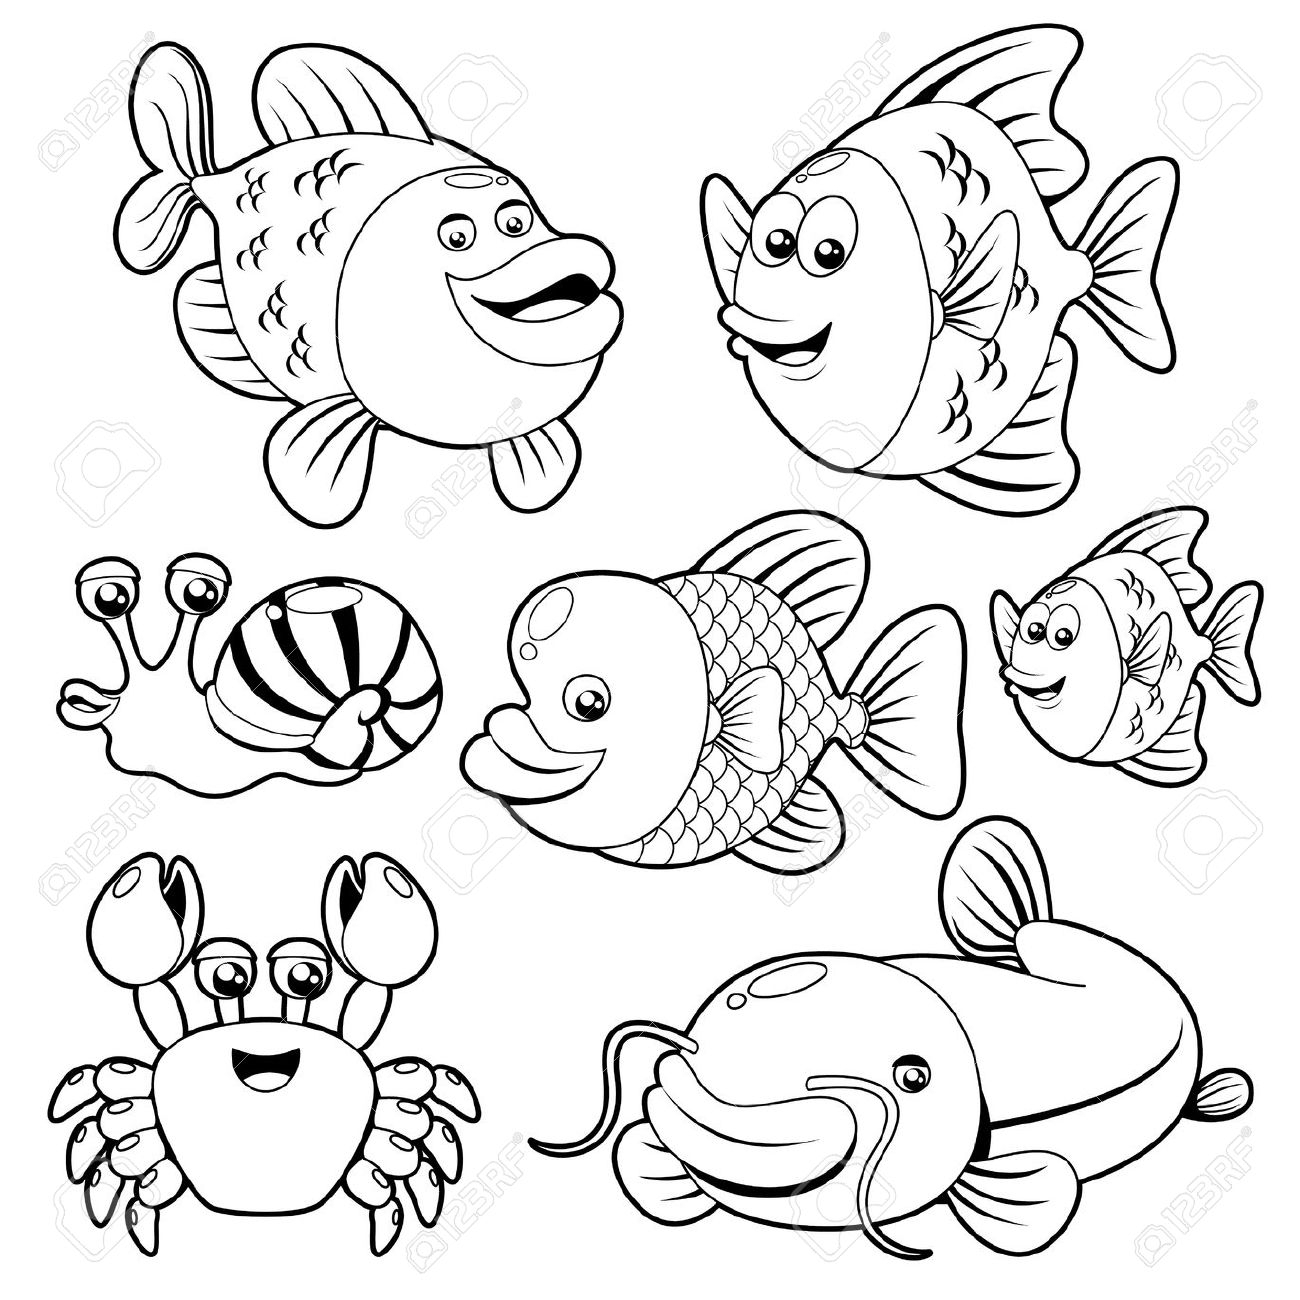 1300x1300 New Water Animal Coloring Pages Gallery Printable Coloring Sheet